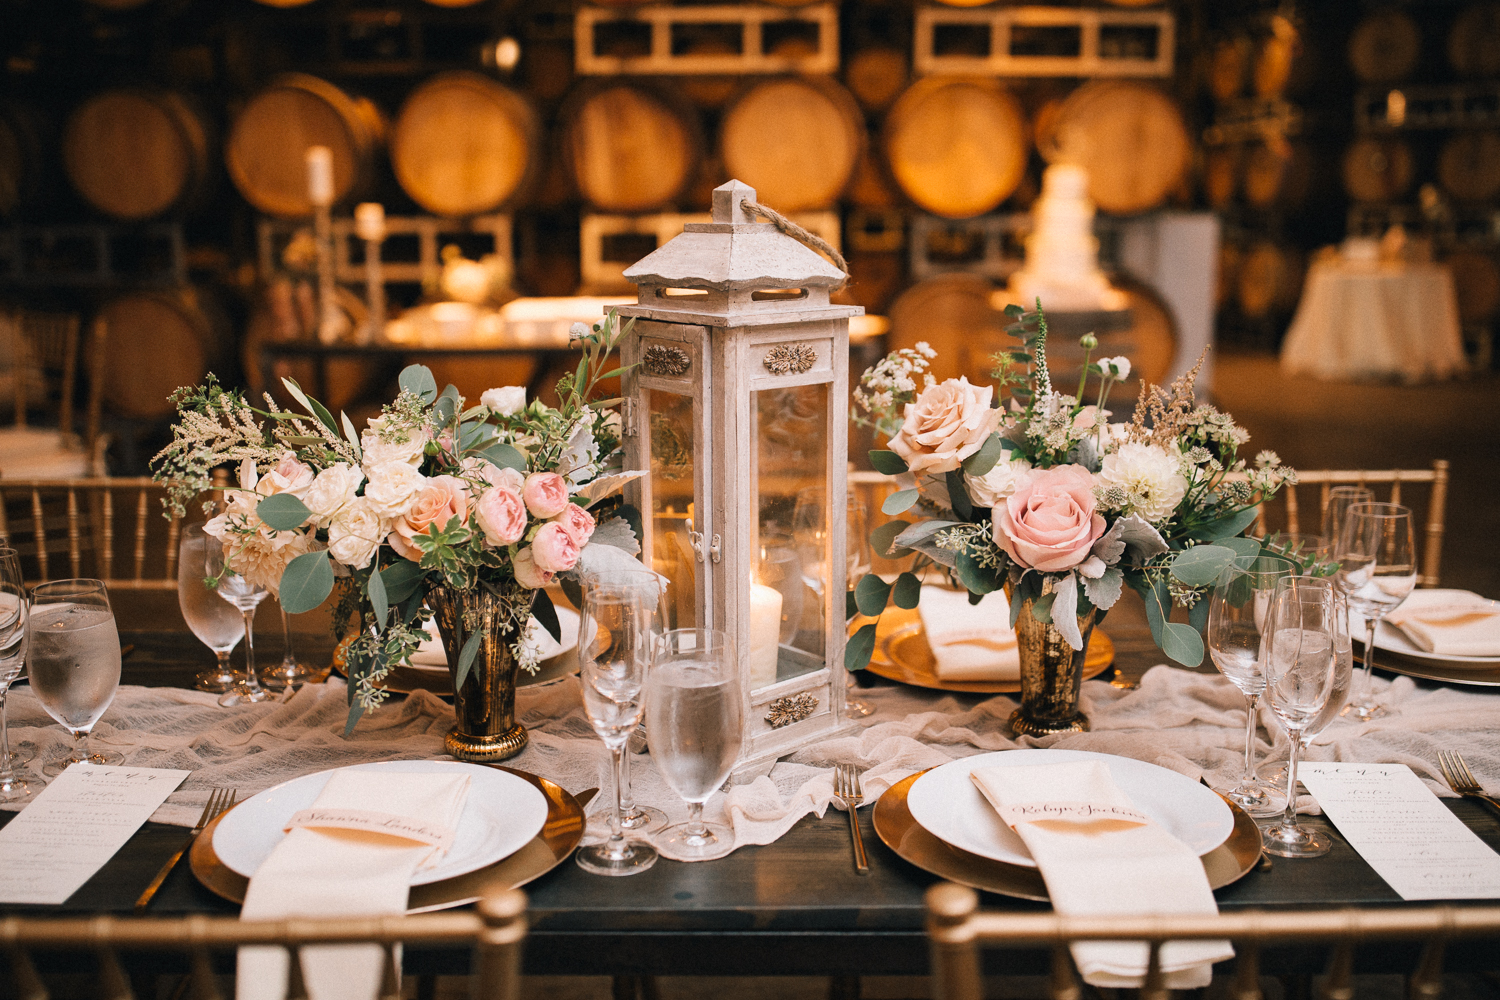 2018_08_ 112018.08.11 Cline Vinyard Wedding Blog Photos Edited For Web 0063.jpg